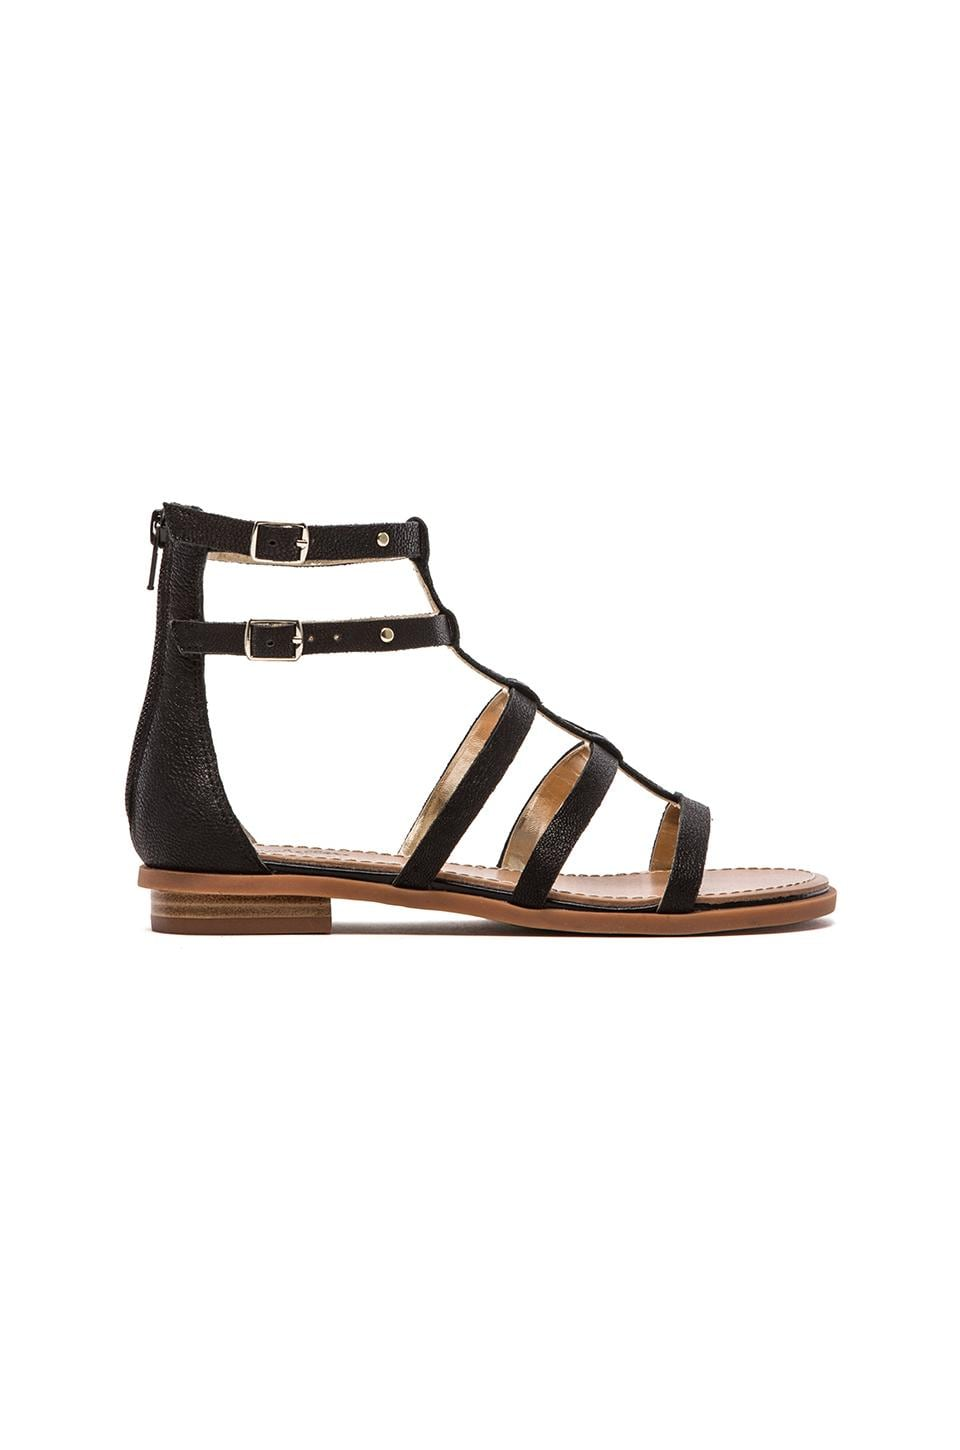 Seychelles Aim High Sandal in Black